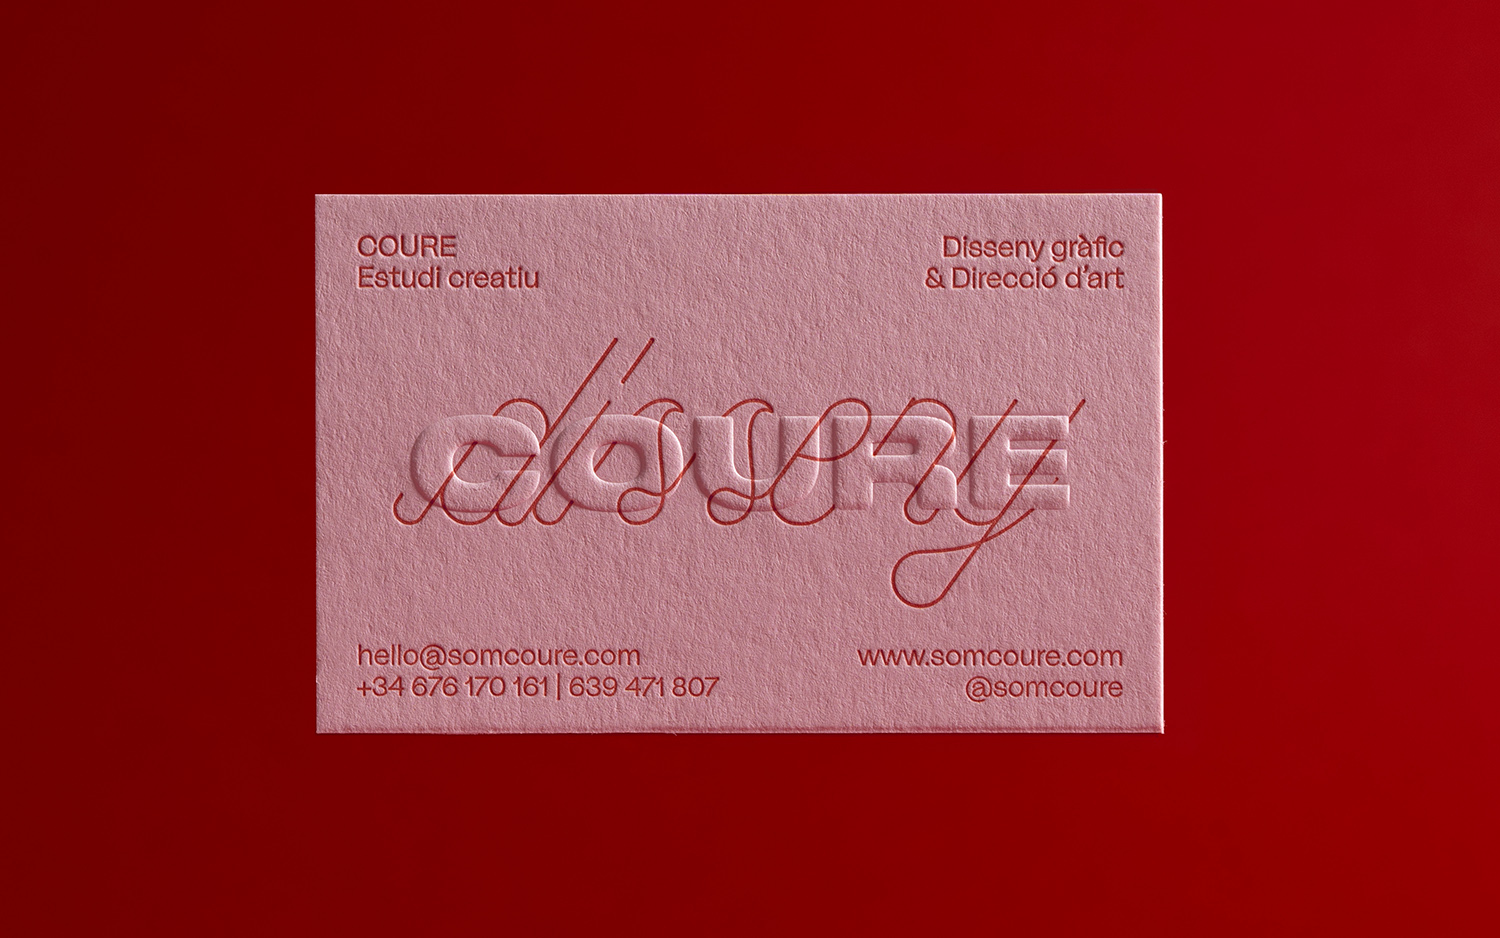 Coure business card